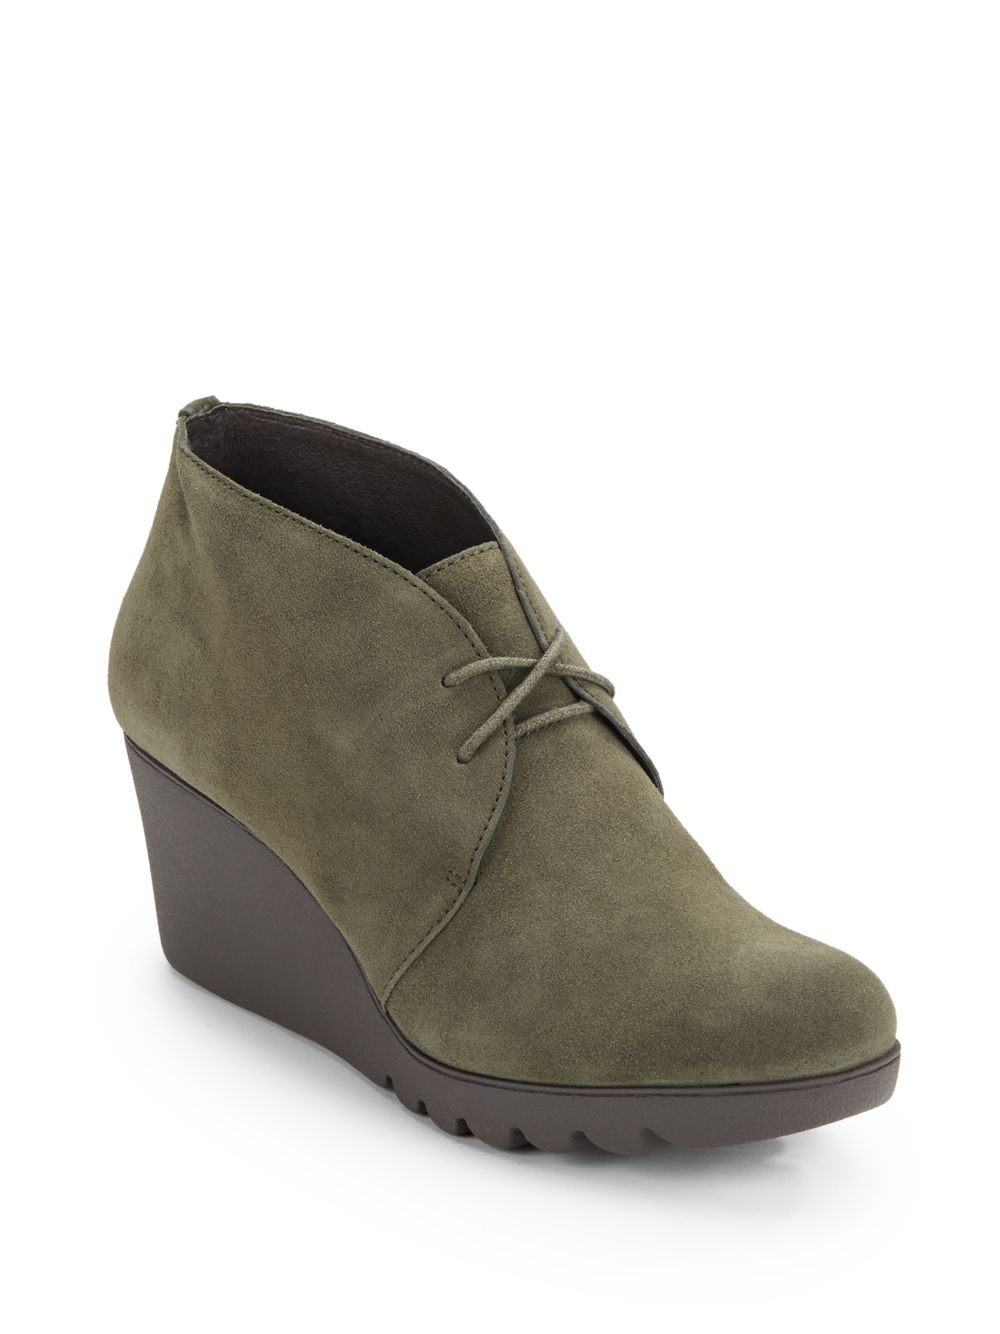 donald j pliner maka suede wedge chukka boots in green lyst